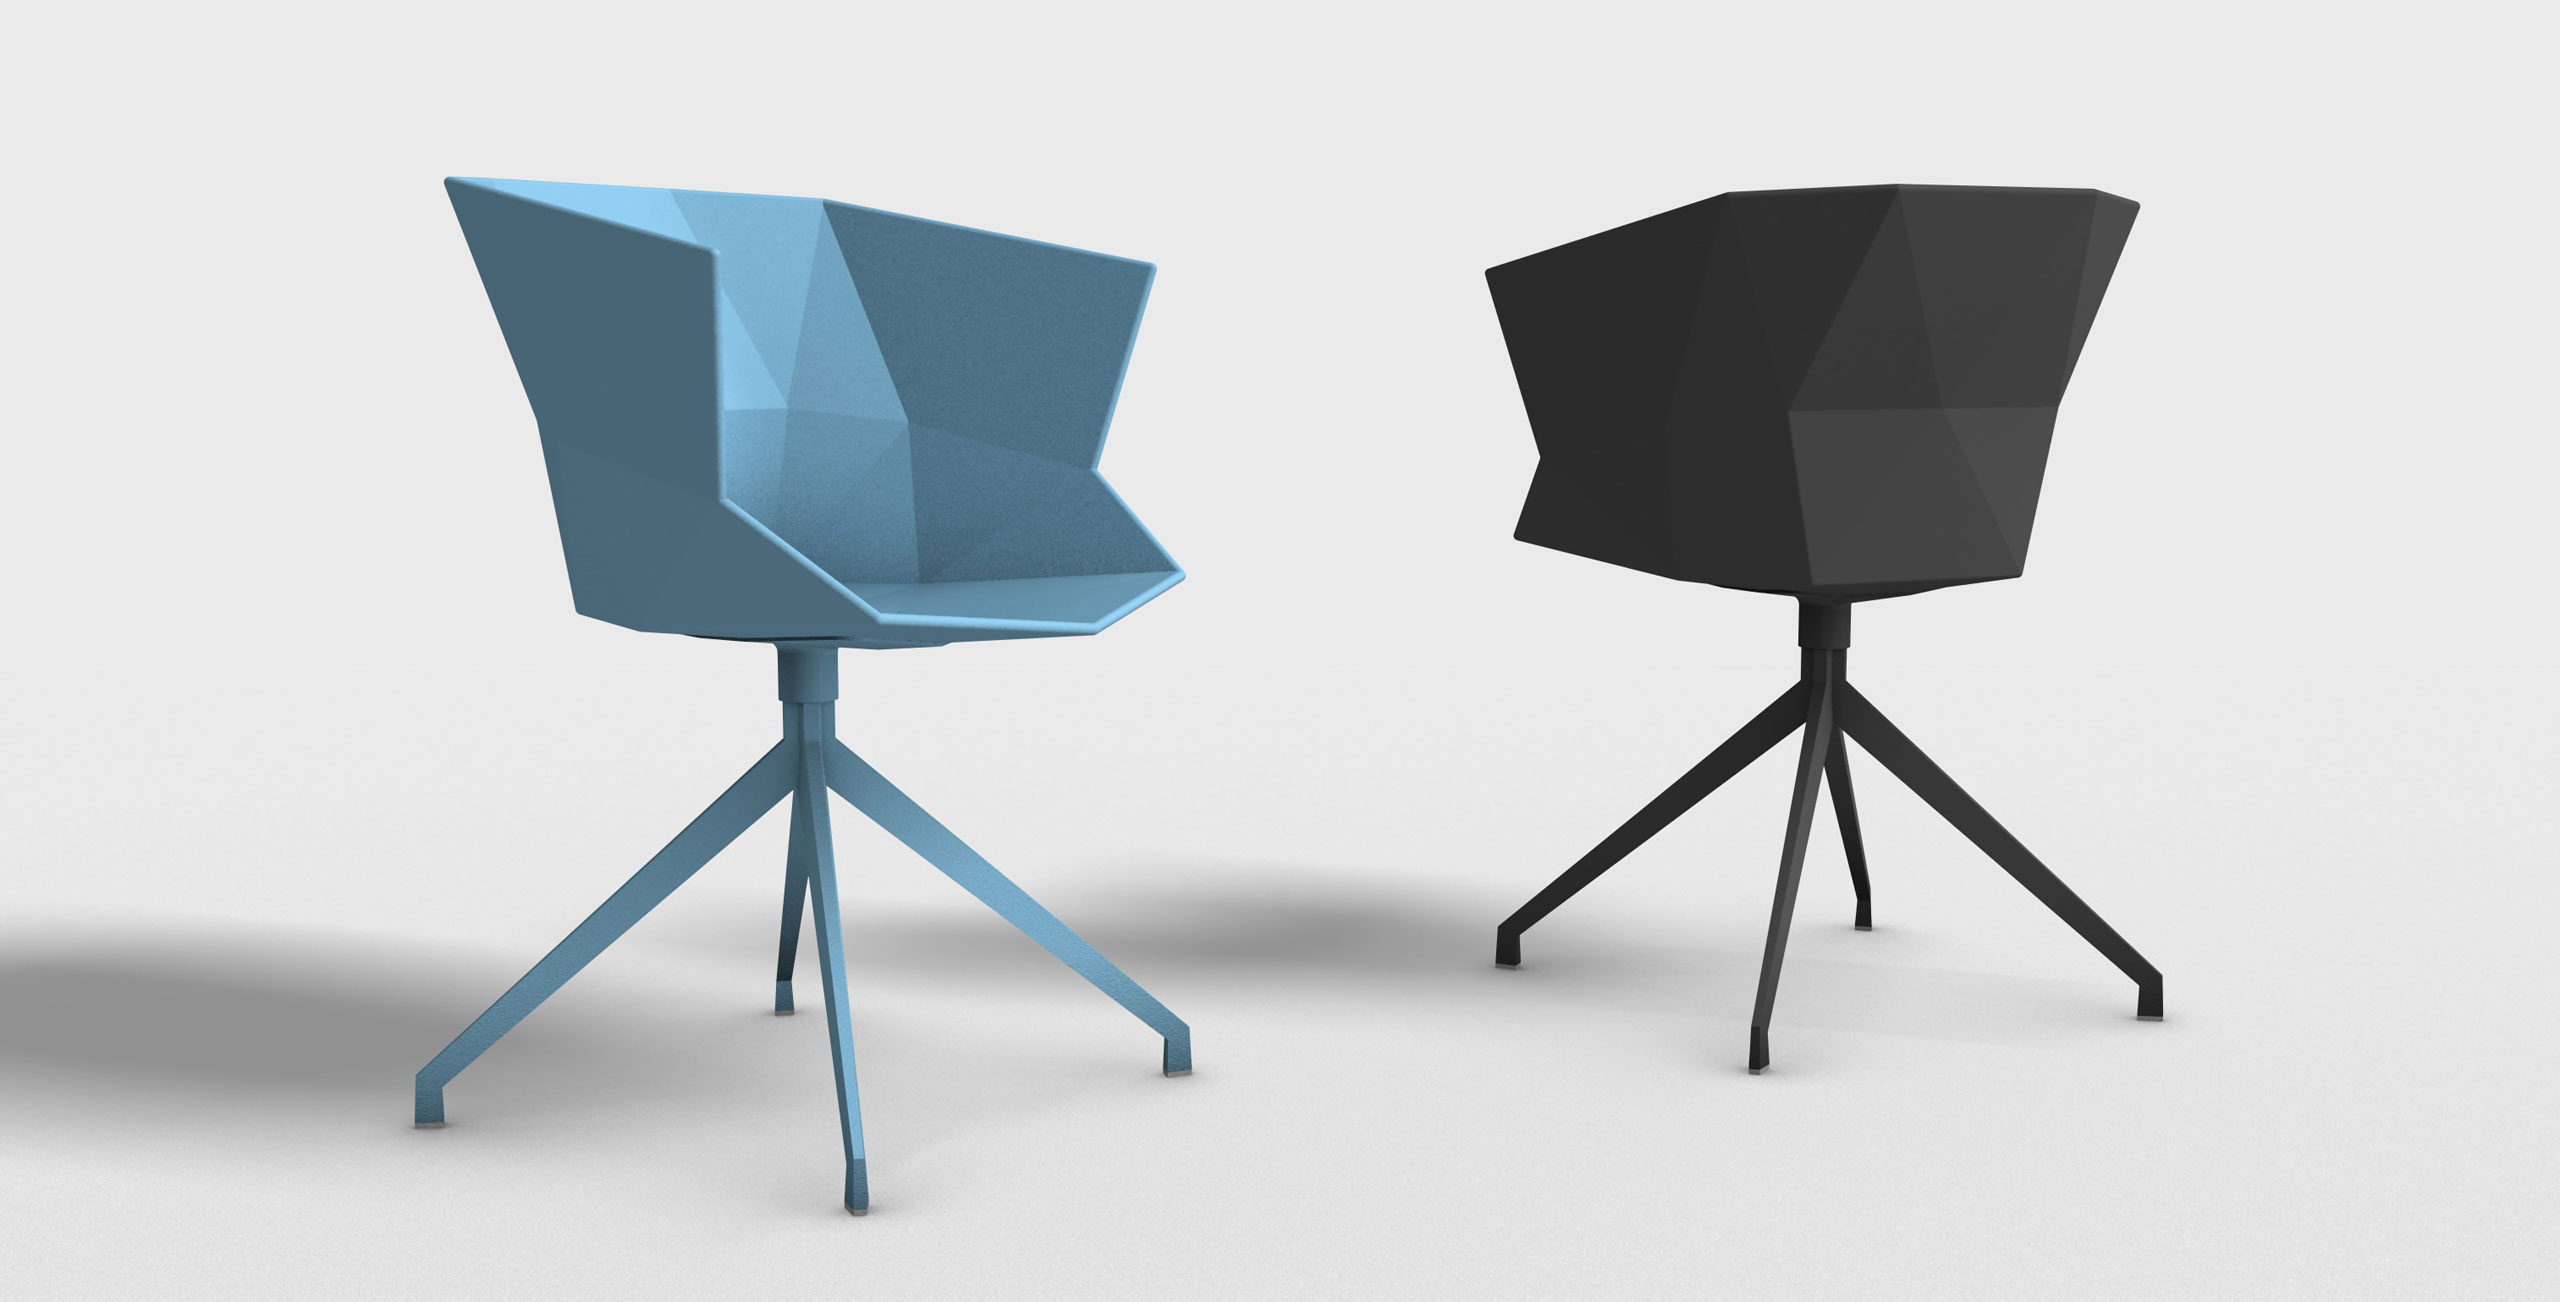 0129_Triangulated_chair_32.jpg